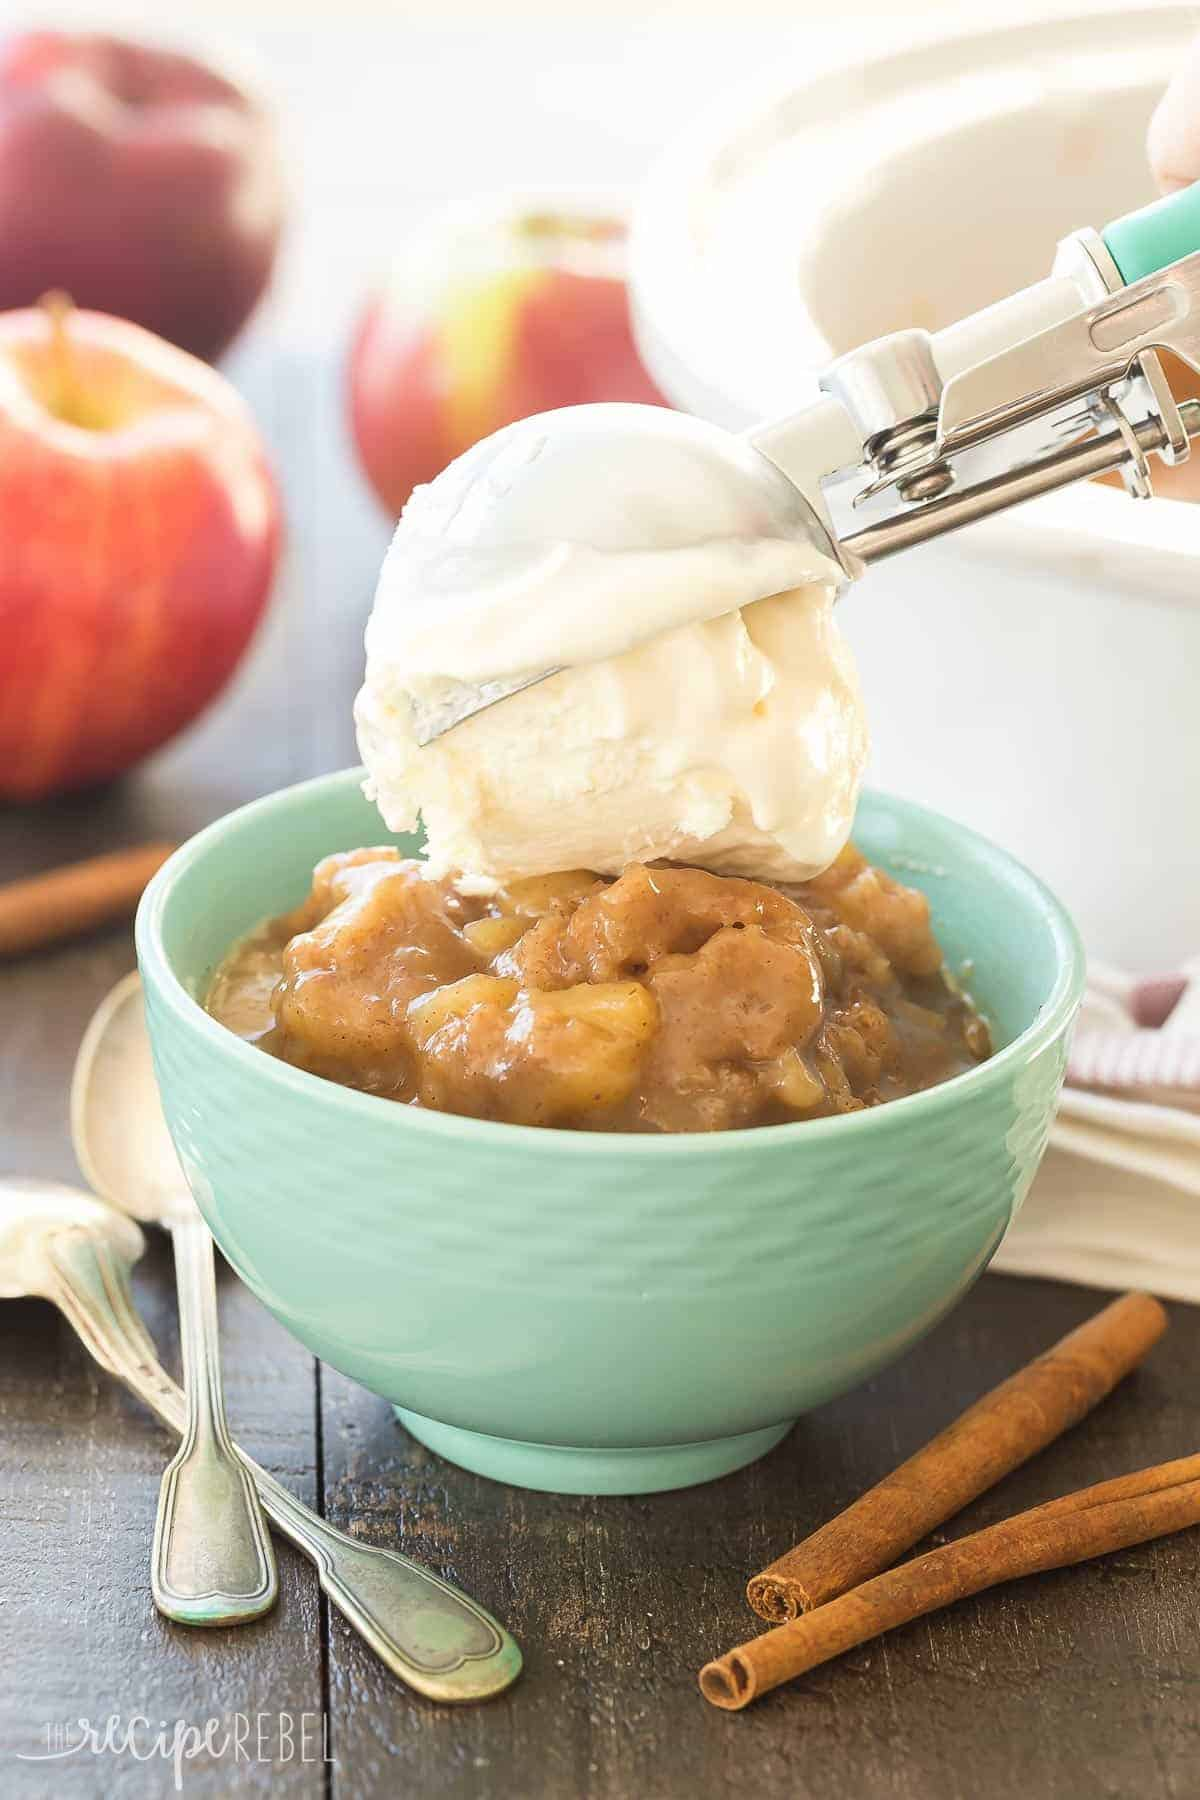 This Slow Cooker Caramel Apple Pudding Cake is SO simple, loaded with apples and makes its own hot caramel sauce as it cooks. Our new favorite dessert! crockpot dessert | slow cooker dessert | apple dessert | apple recipe | slow cooker recipe